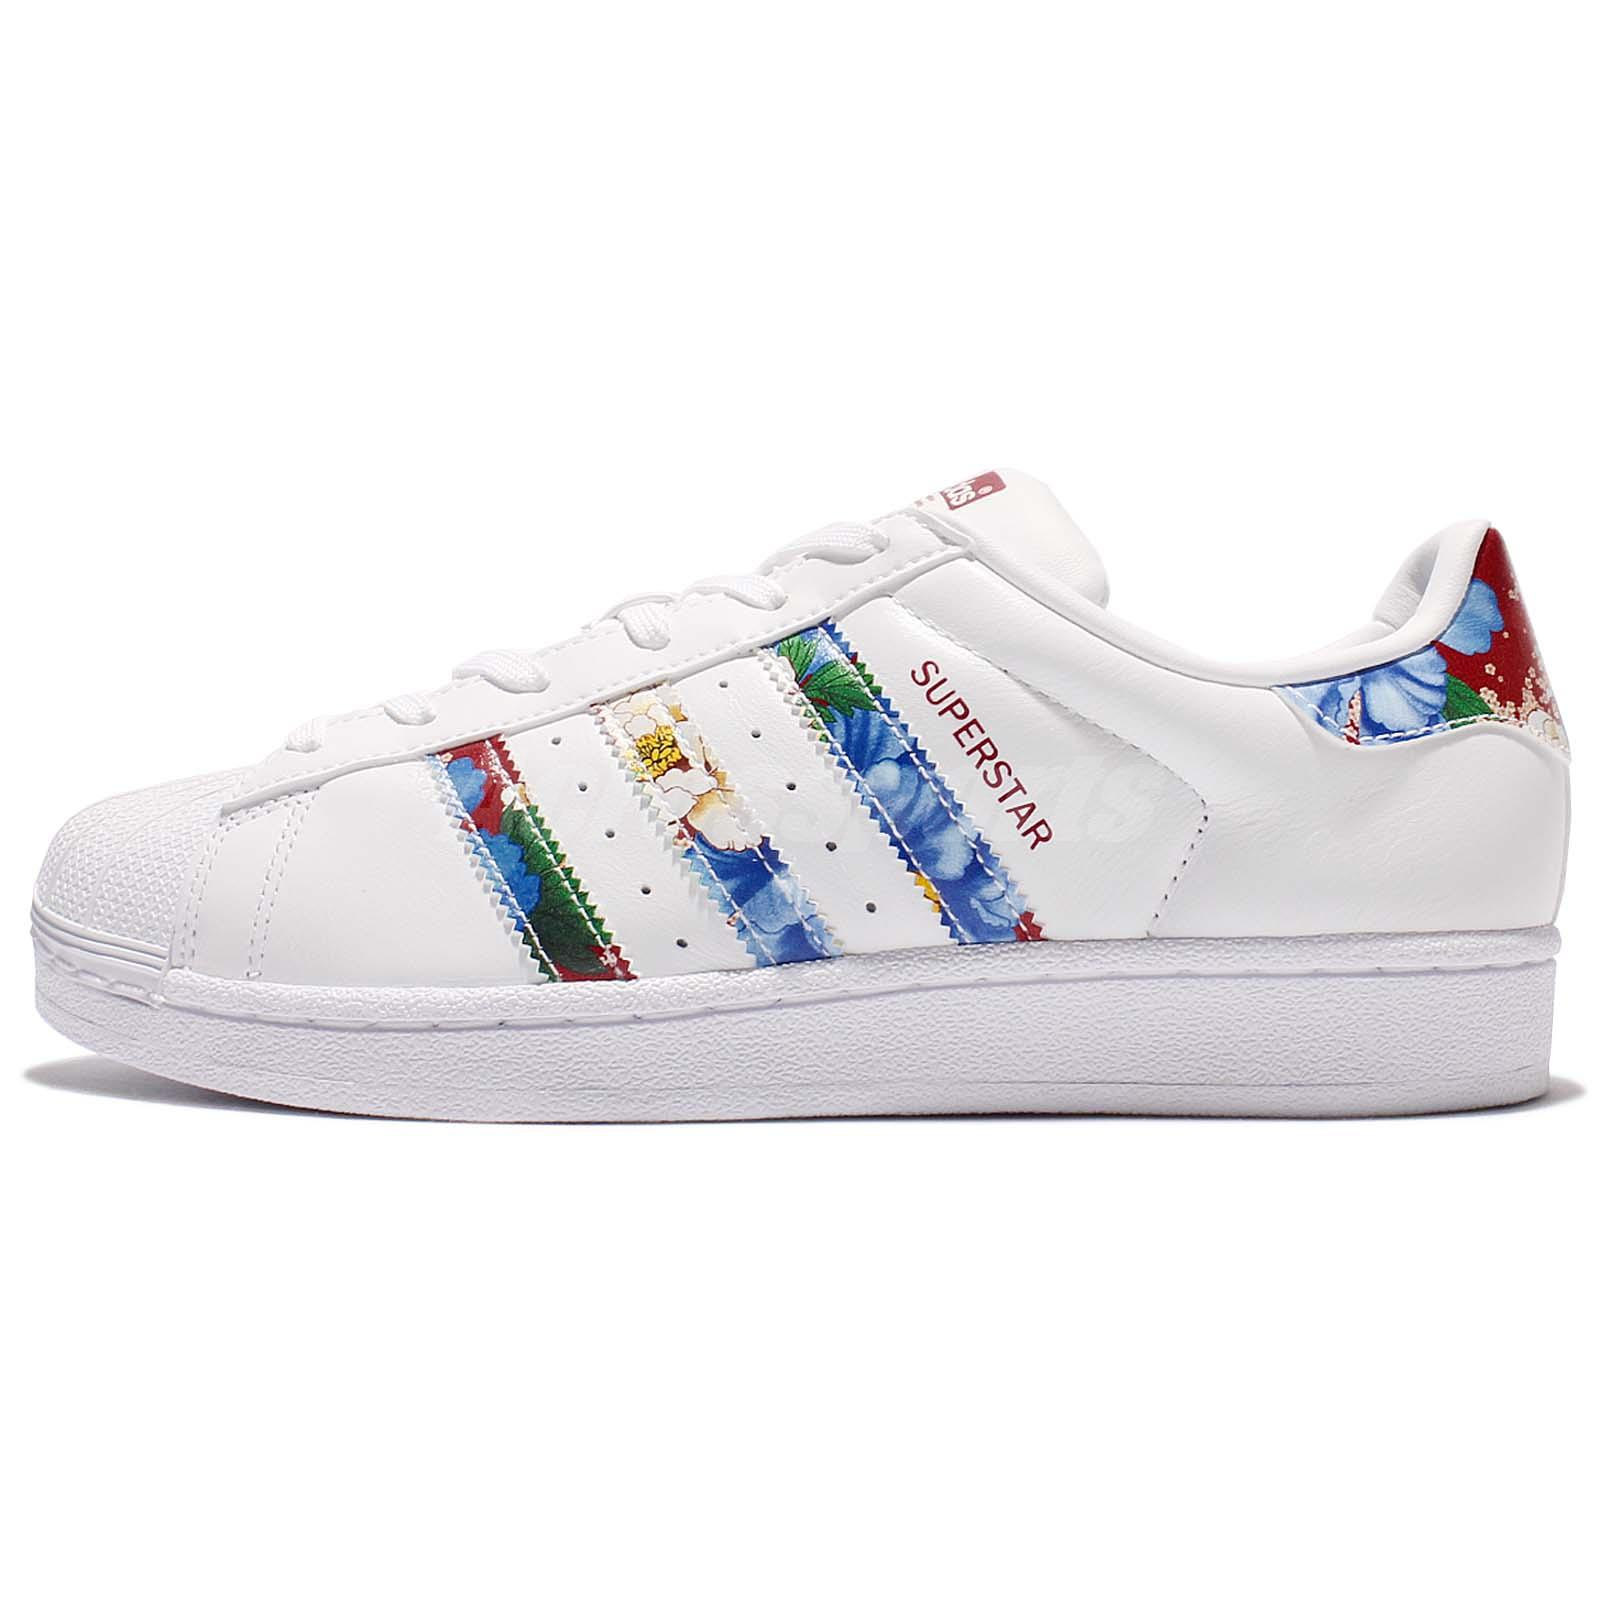 Adidas superstar w multicolore sneakerdiscount originali.